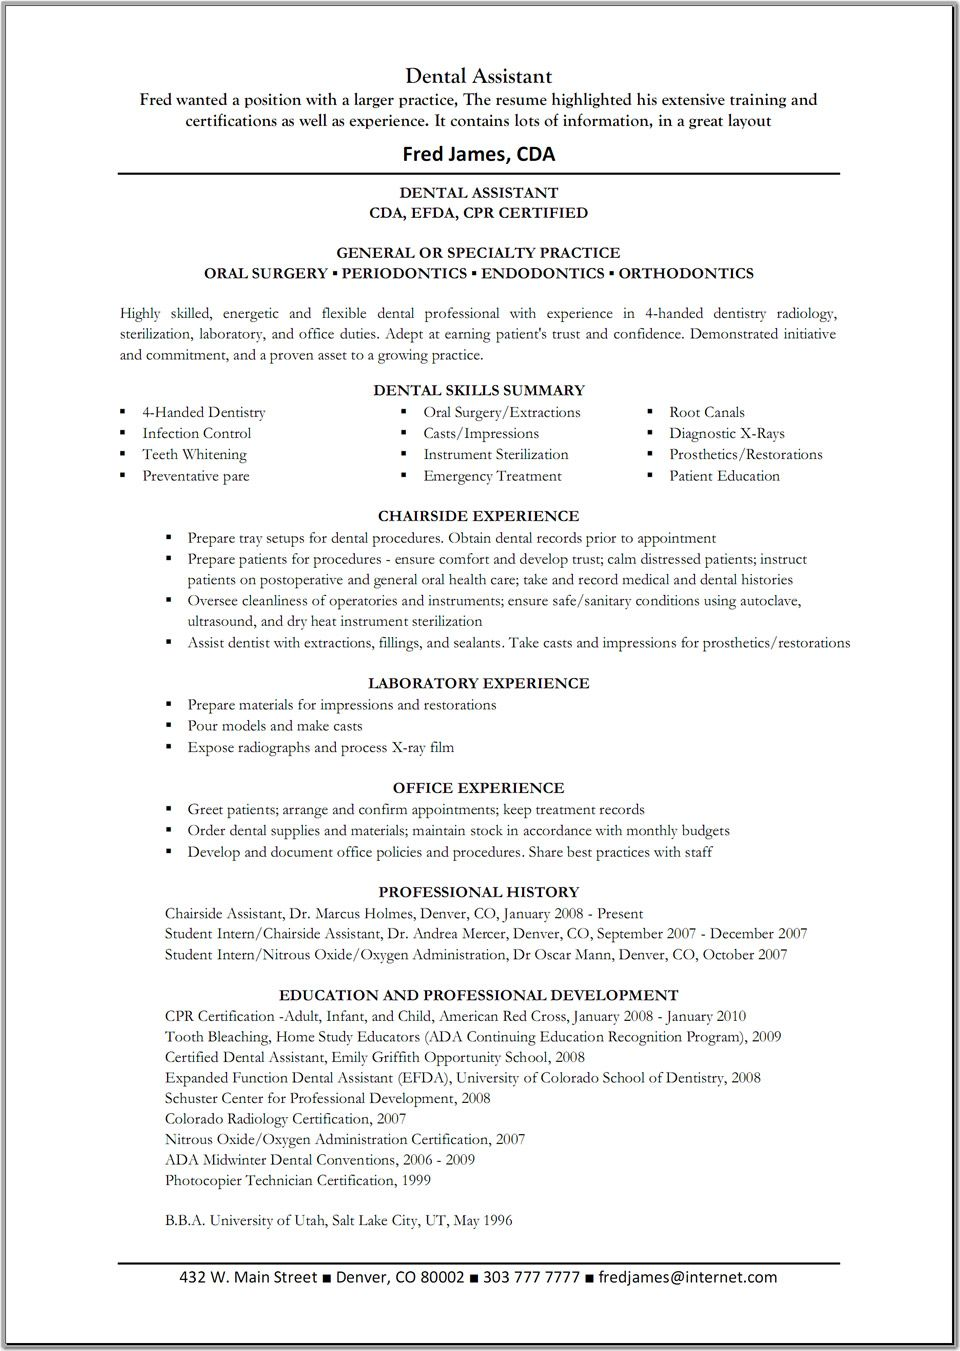 Superb Dental Assistant Resume Template | Great Resume Templates  Dental Assisting Resume